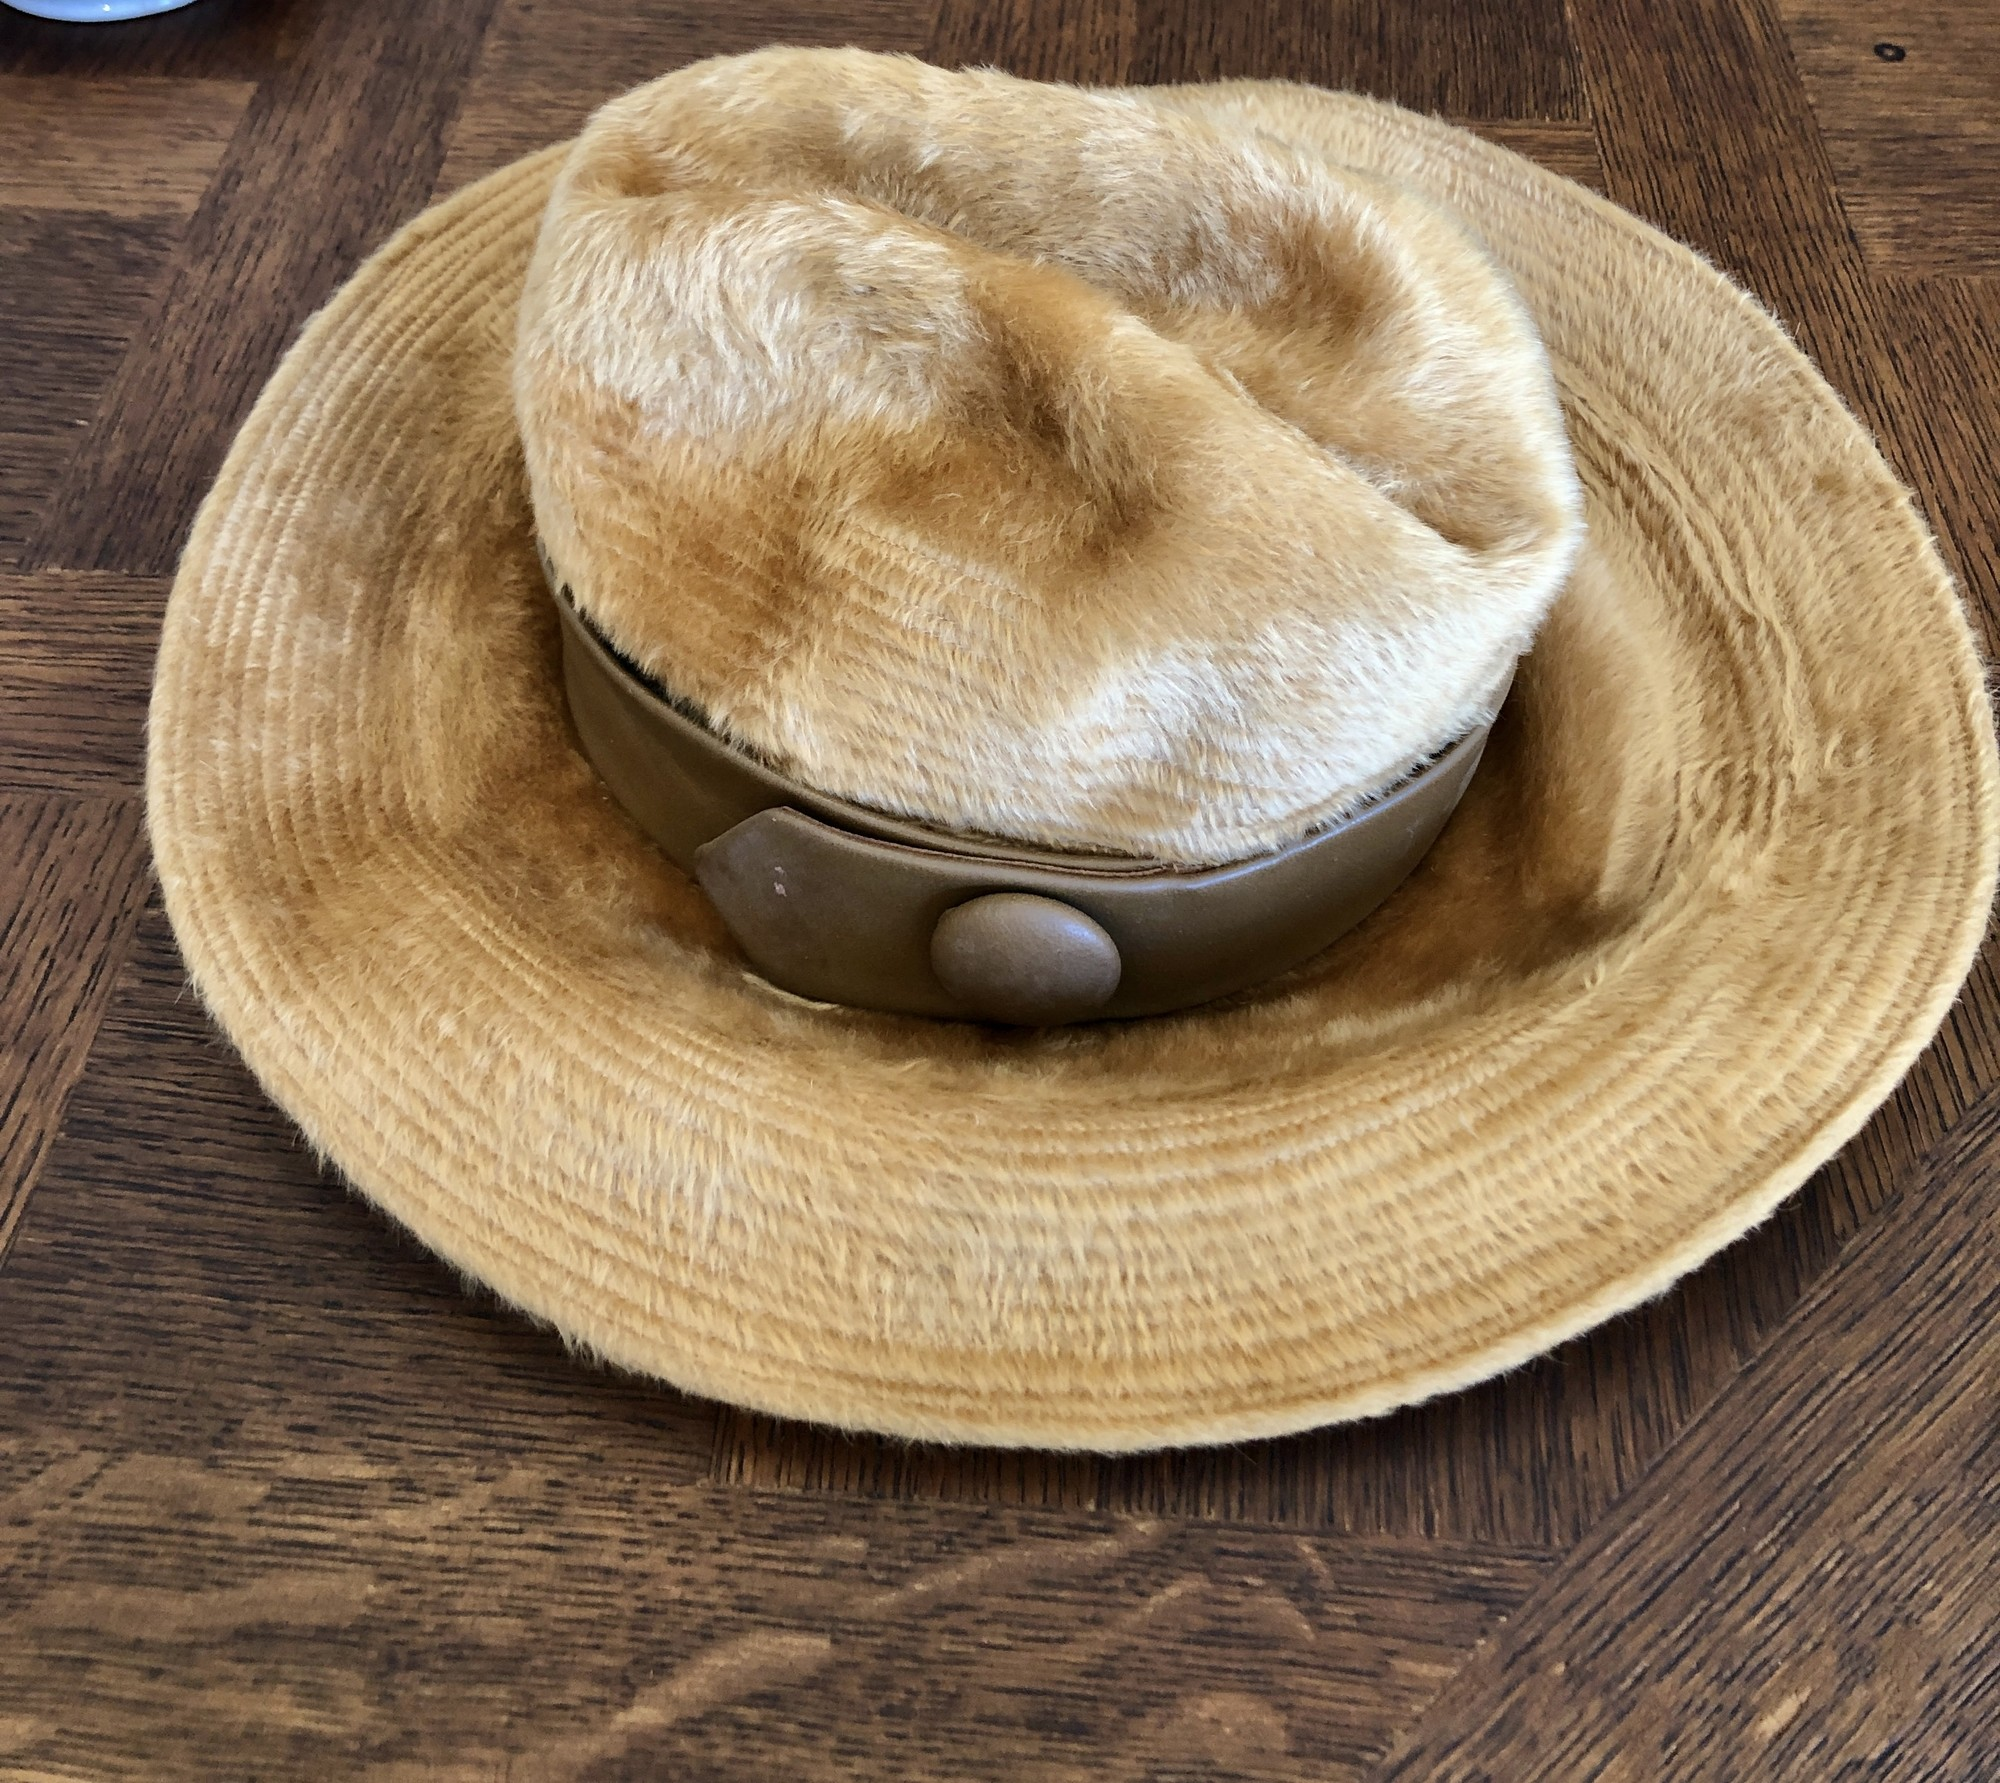 """Fabulous vintage CHRISTIAN DIOR Felt Wool hat with leather band c. 1950, It's a pretty neutral camel color. Inside diameter is 7.25\"""" front to back and 6.5\"""" side to side. Brim to brim is 14\"""".<br /> Will ship USPS Priority mail."""